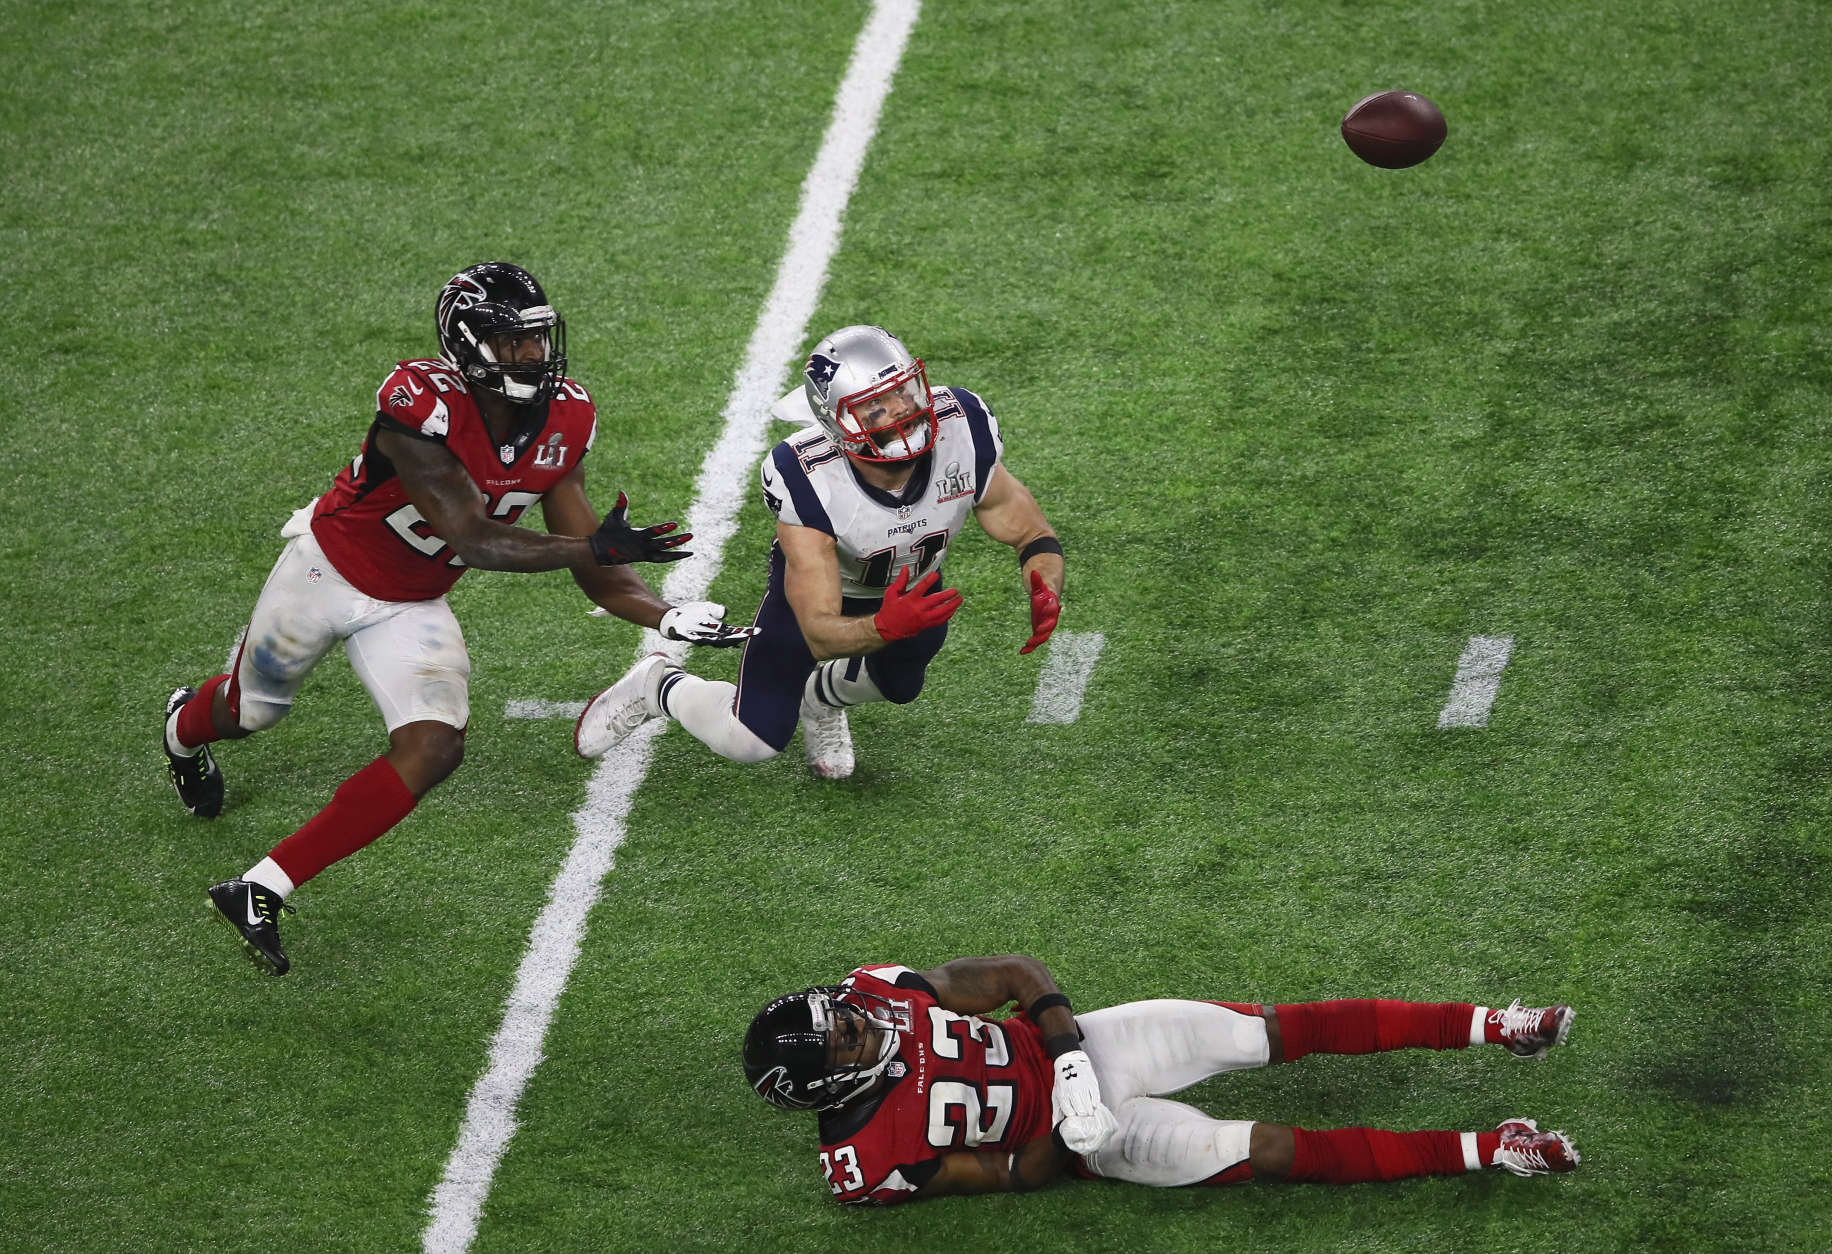 HOUSTON, TX - FEBRUARY 05:  Julian Edelman #11 of the New England Patriots makes a 23 yard catch in the fourth quarter against Robert Alford #23 and Keanu Neal #22 of the Atlanta Falcons during Super Bowl 51 at NRG Stadium on February 5, 2017 in Houston, Texas.  (Photo by Ezra Shaw/Getty Images)